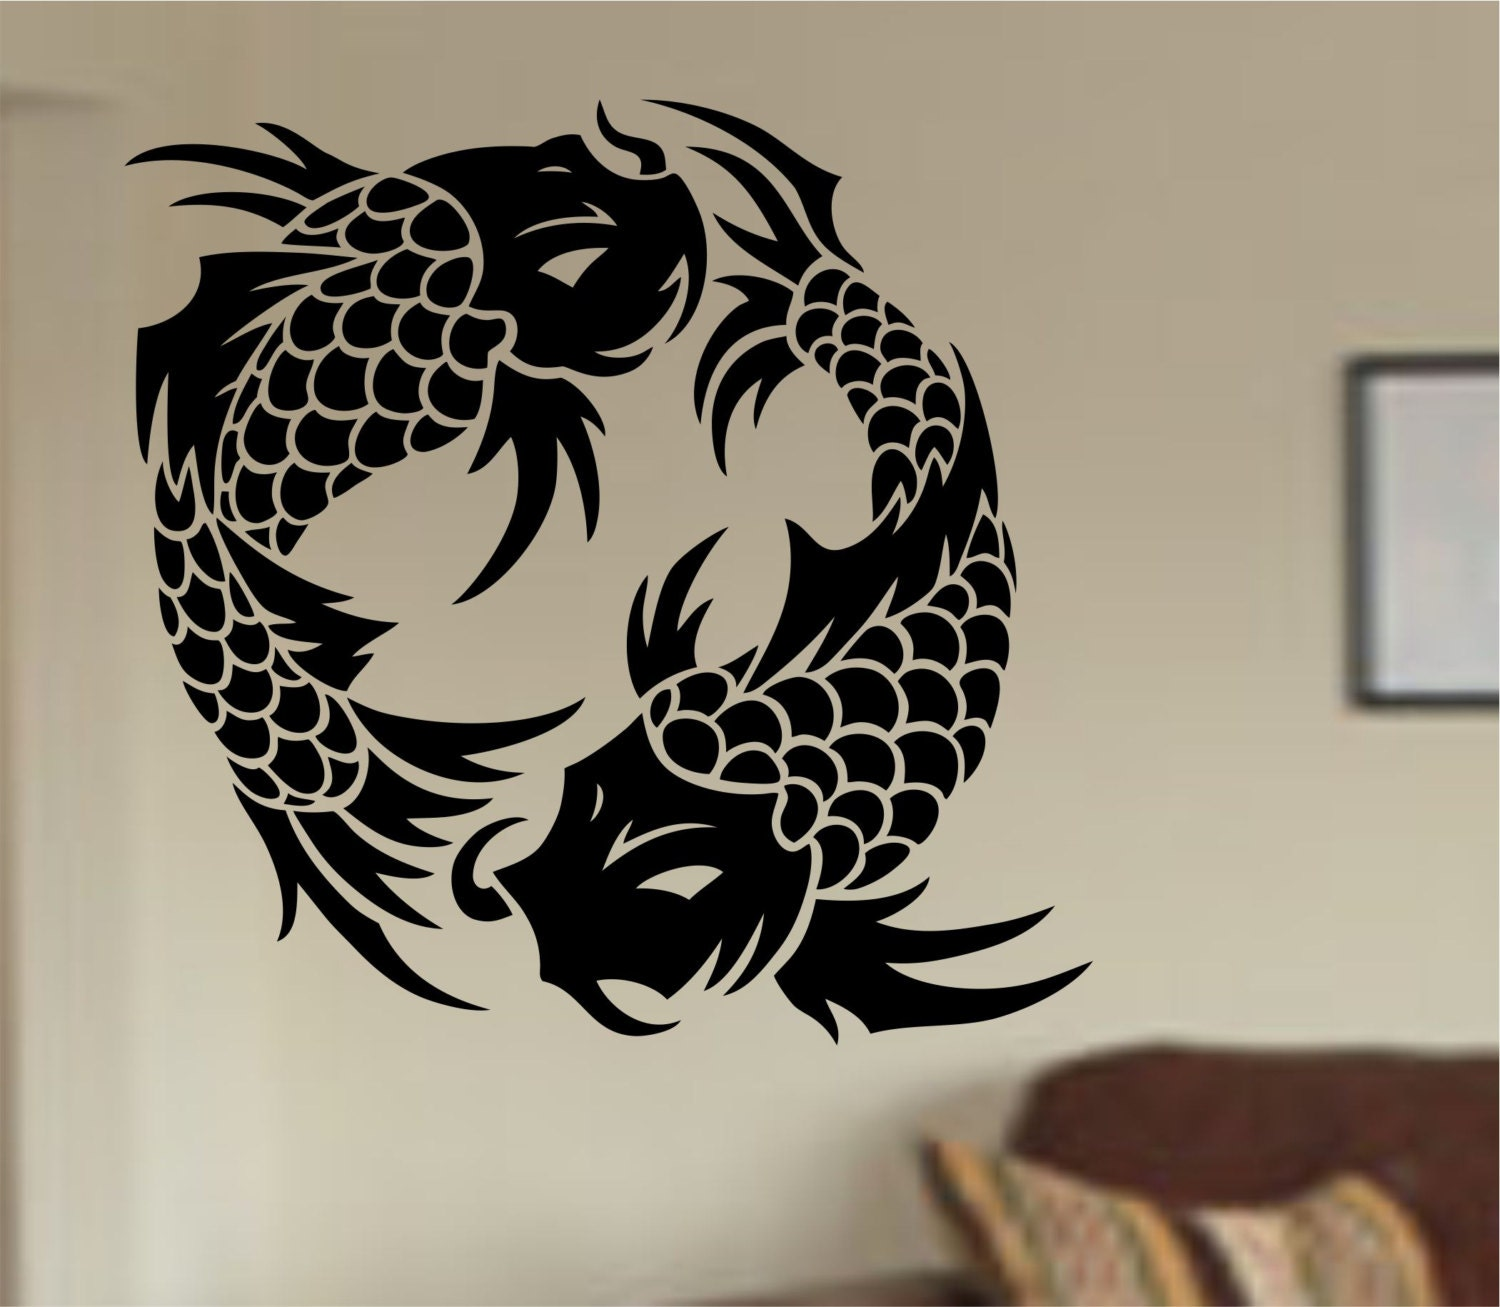 Koi fish wall decal sticker art decor bedroom design mural for Koi home decor